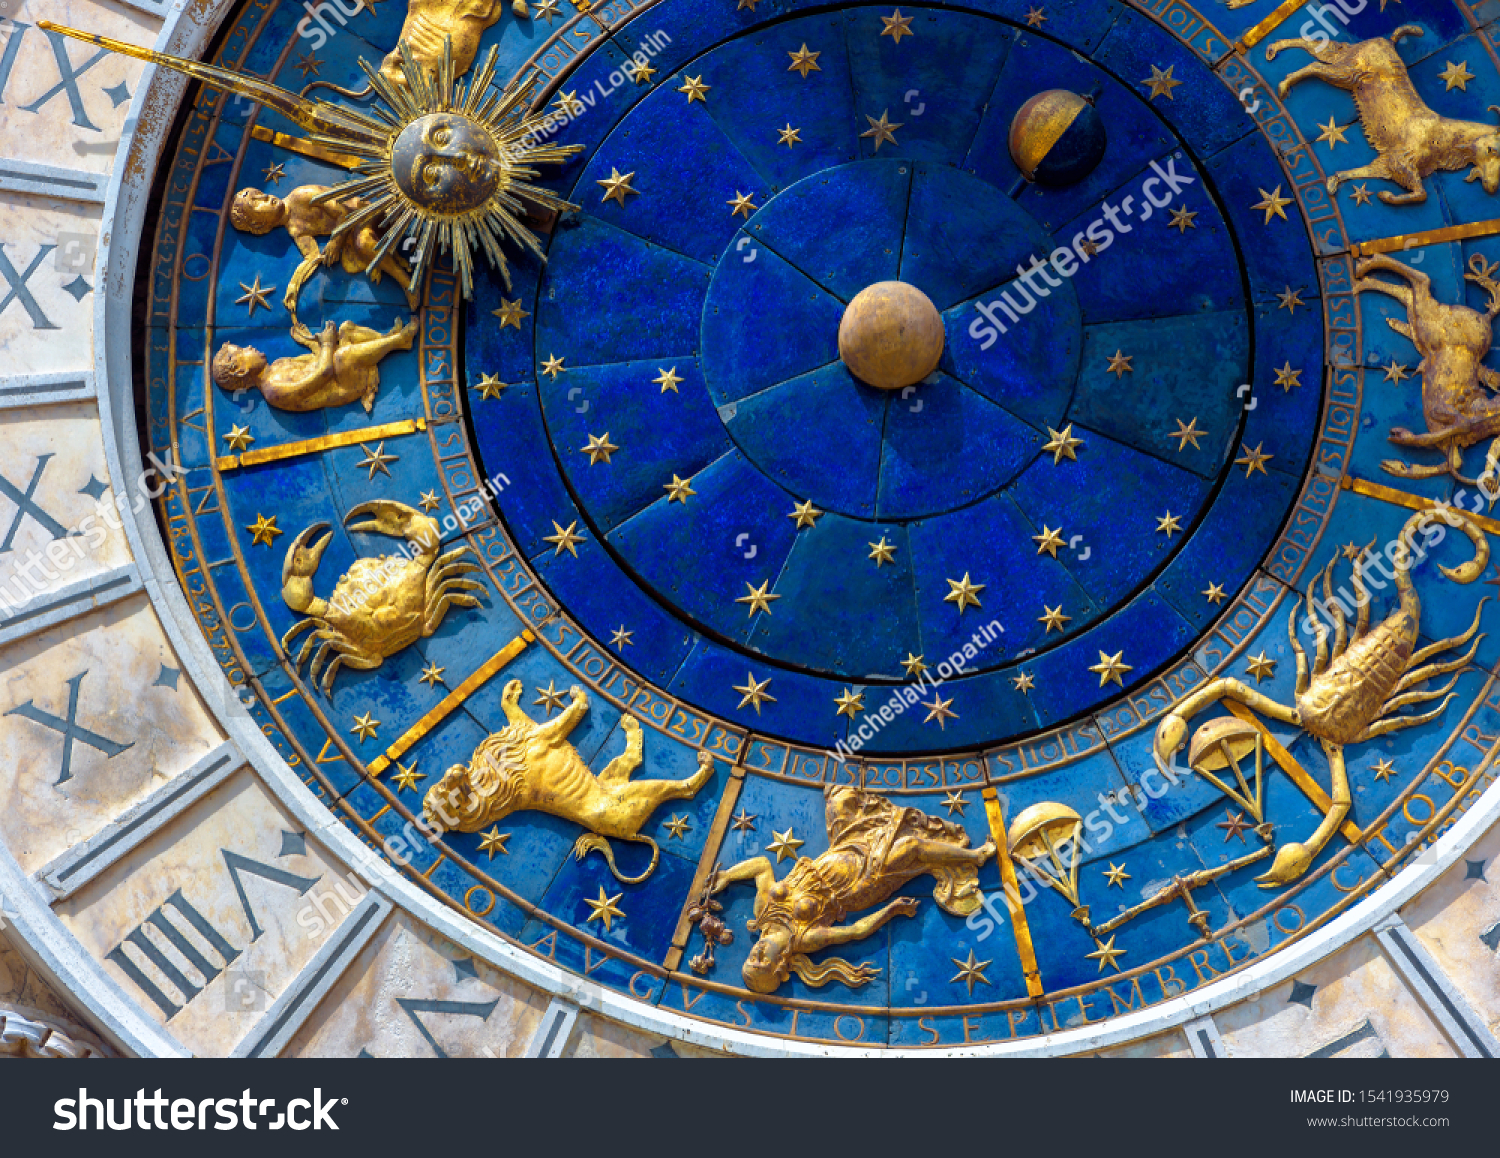 Astrological signs on ancient clock Torre dell'Orologio, Venice, Italy. Medieval Zodiac wheel and constellations. Golden symbols on star circle. Concept of astrology, horoscope and time. #1541935979